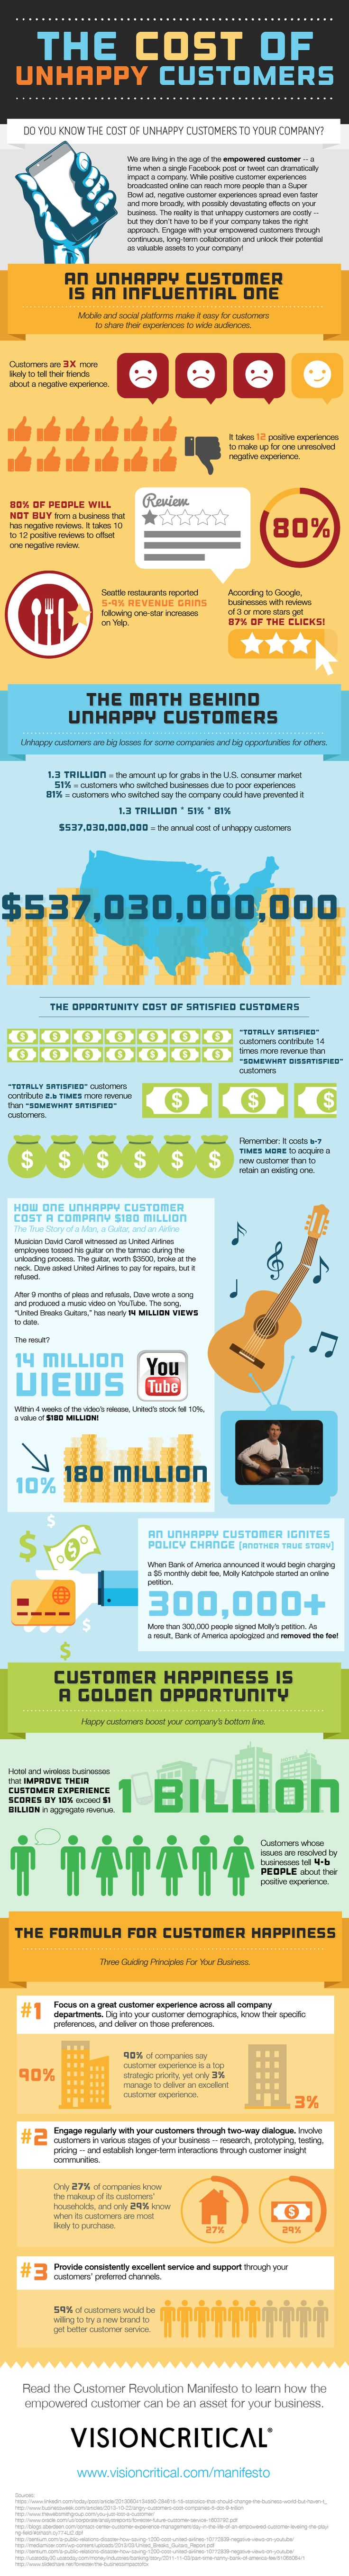 The cost of unhappy customers infographic